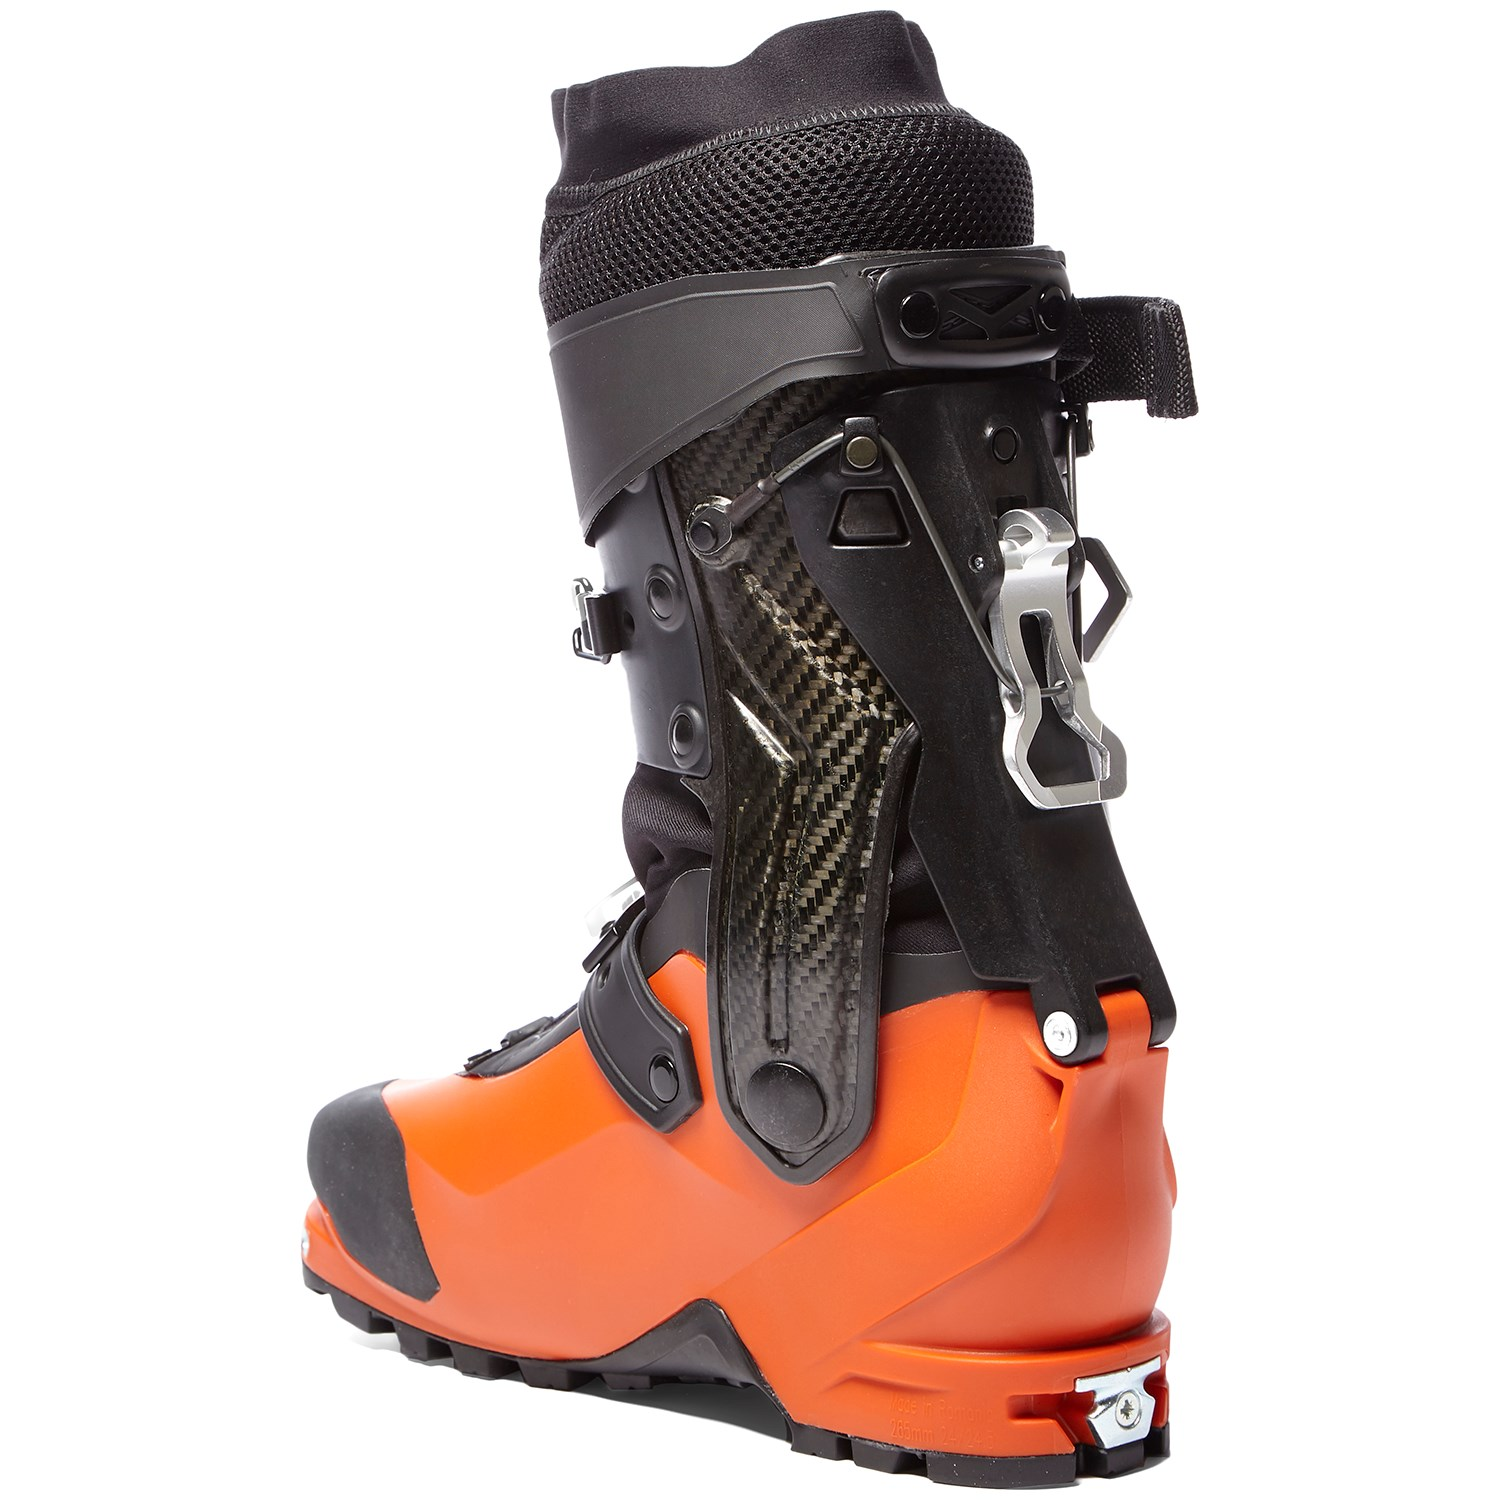 24a082a530 Arc teryx Procline Carbon Support Alpine Touring Ski Boots 2017